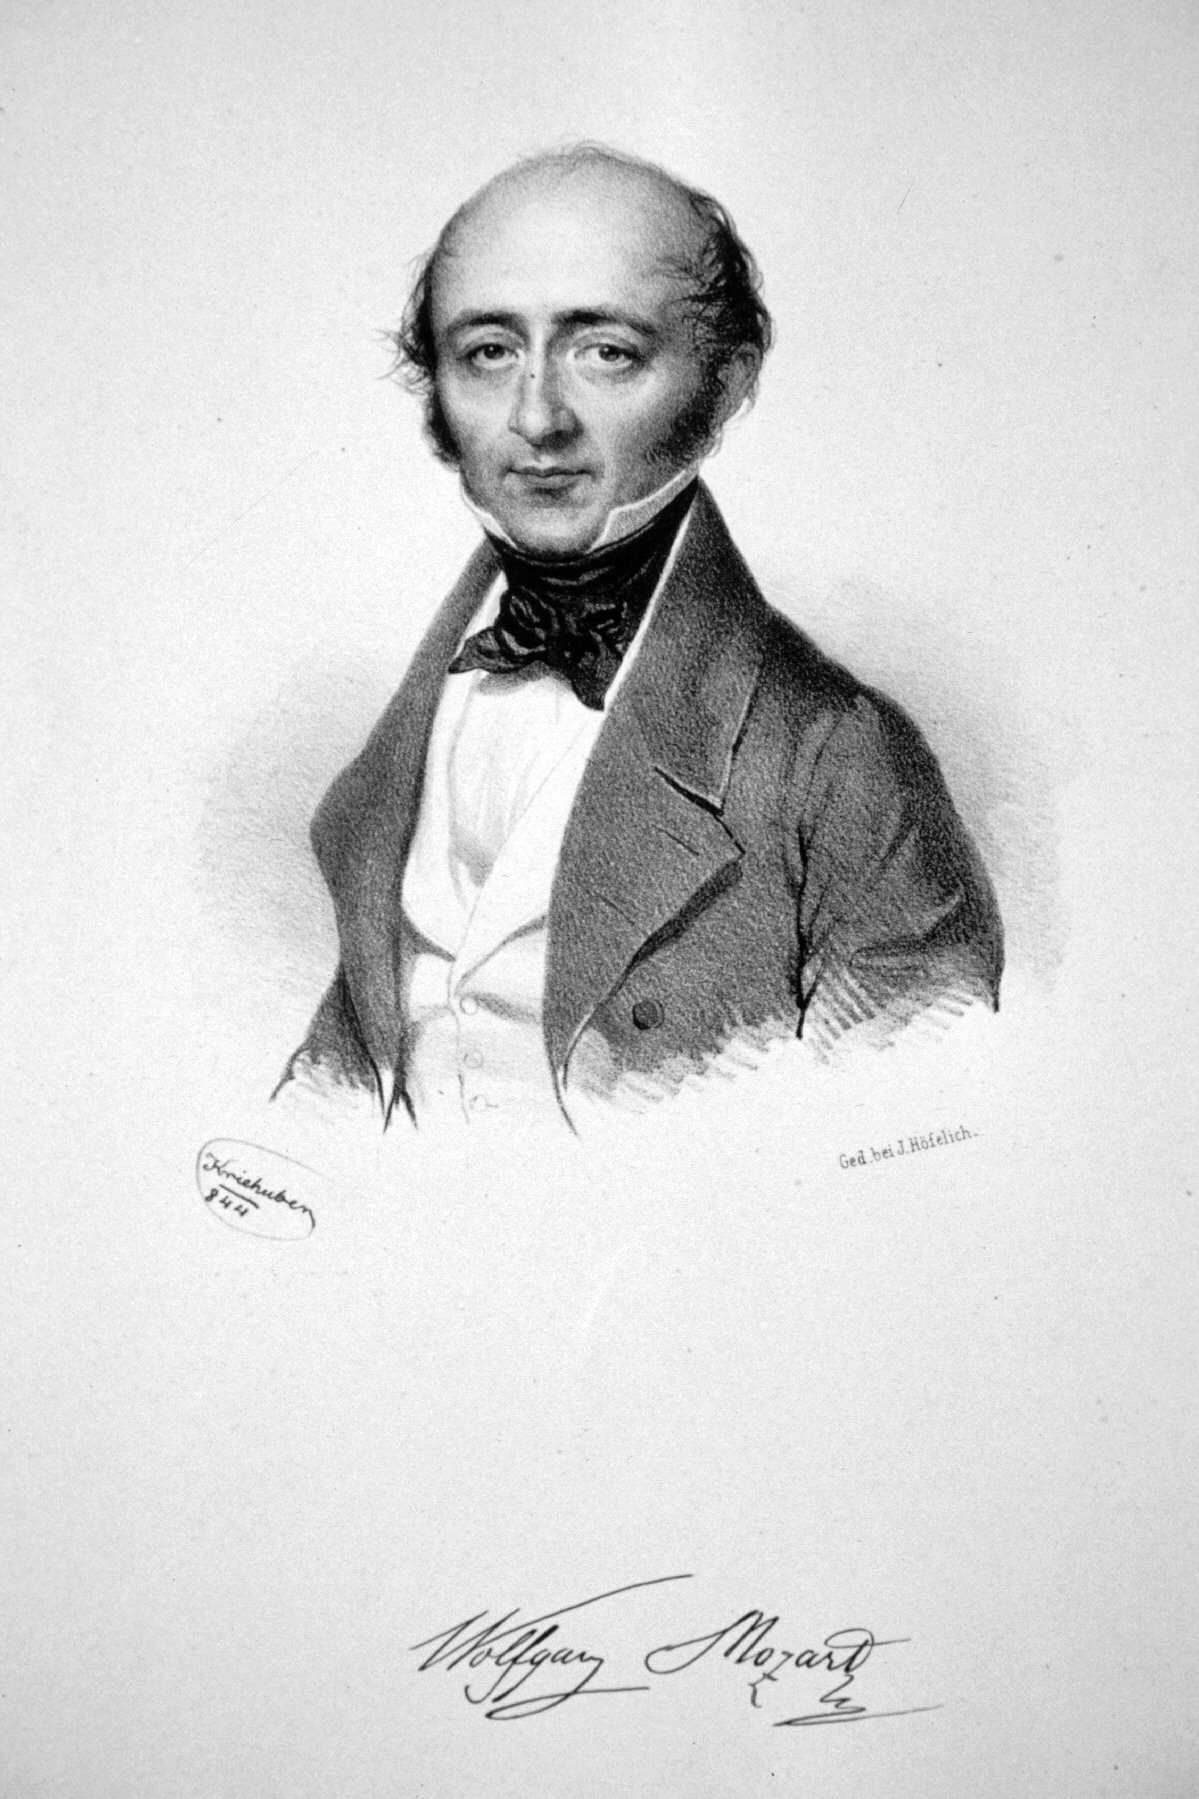 Franz Xaver Mozart (1791-1844), in 1844 not long before his death